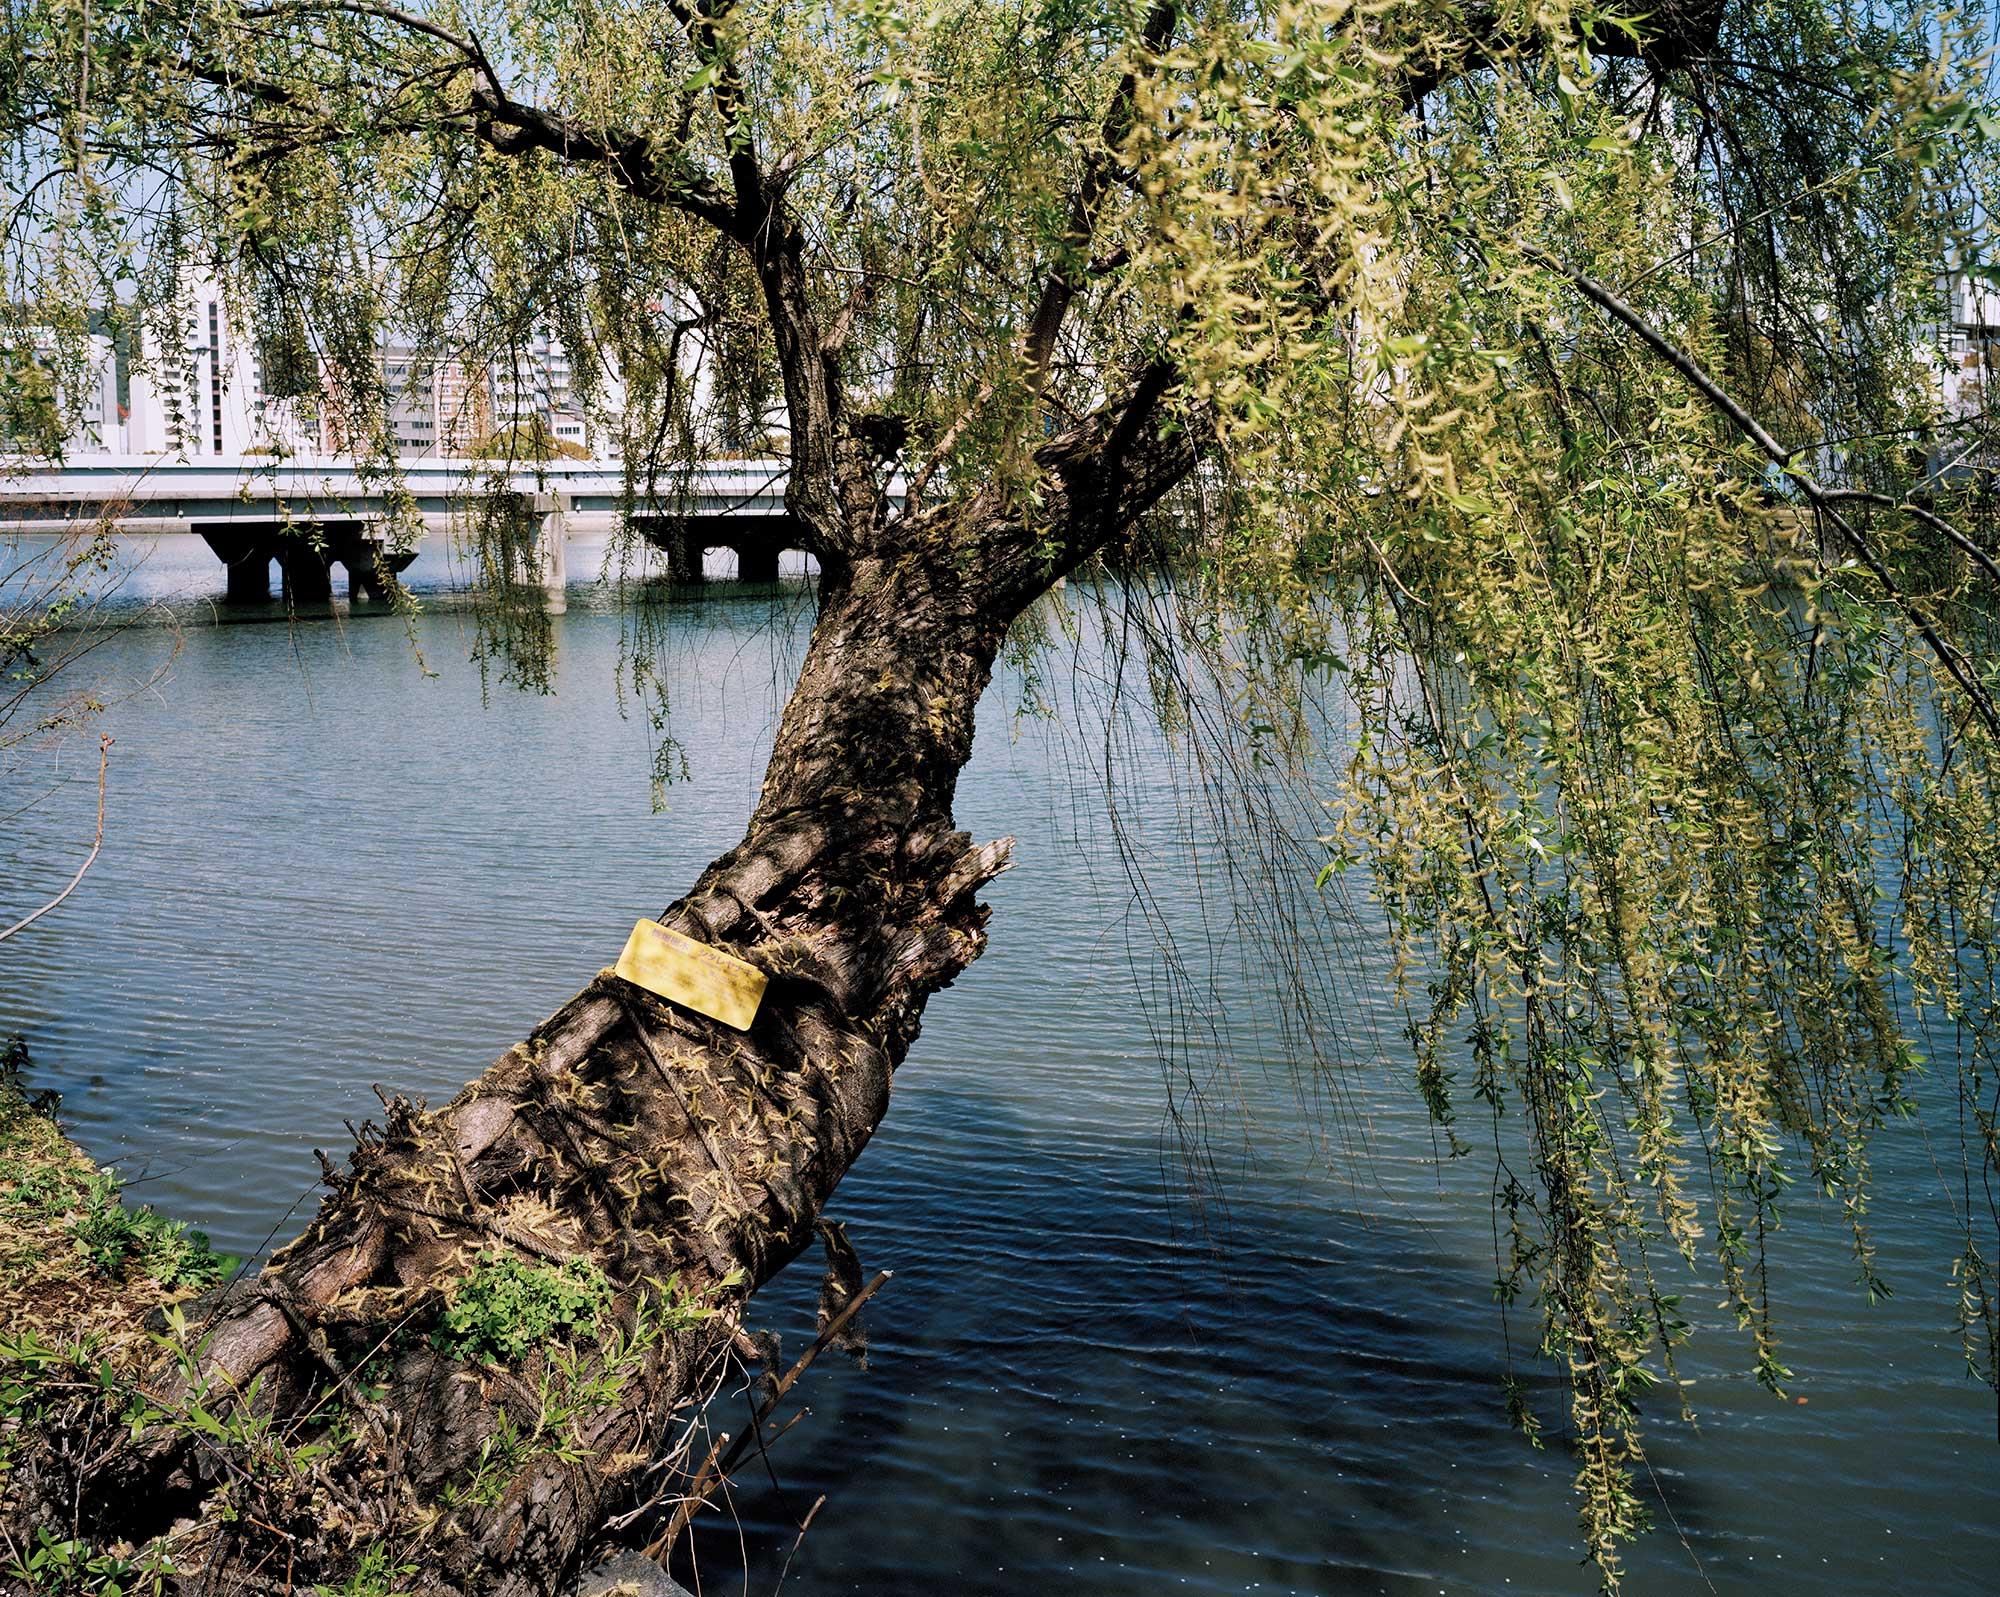 A-bombed Weeping Willow Tree, Hiroshima, 1400 meters from the hypocenter, 30 x 40, Chromogenic Print, 2013.